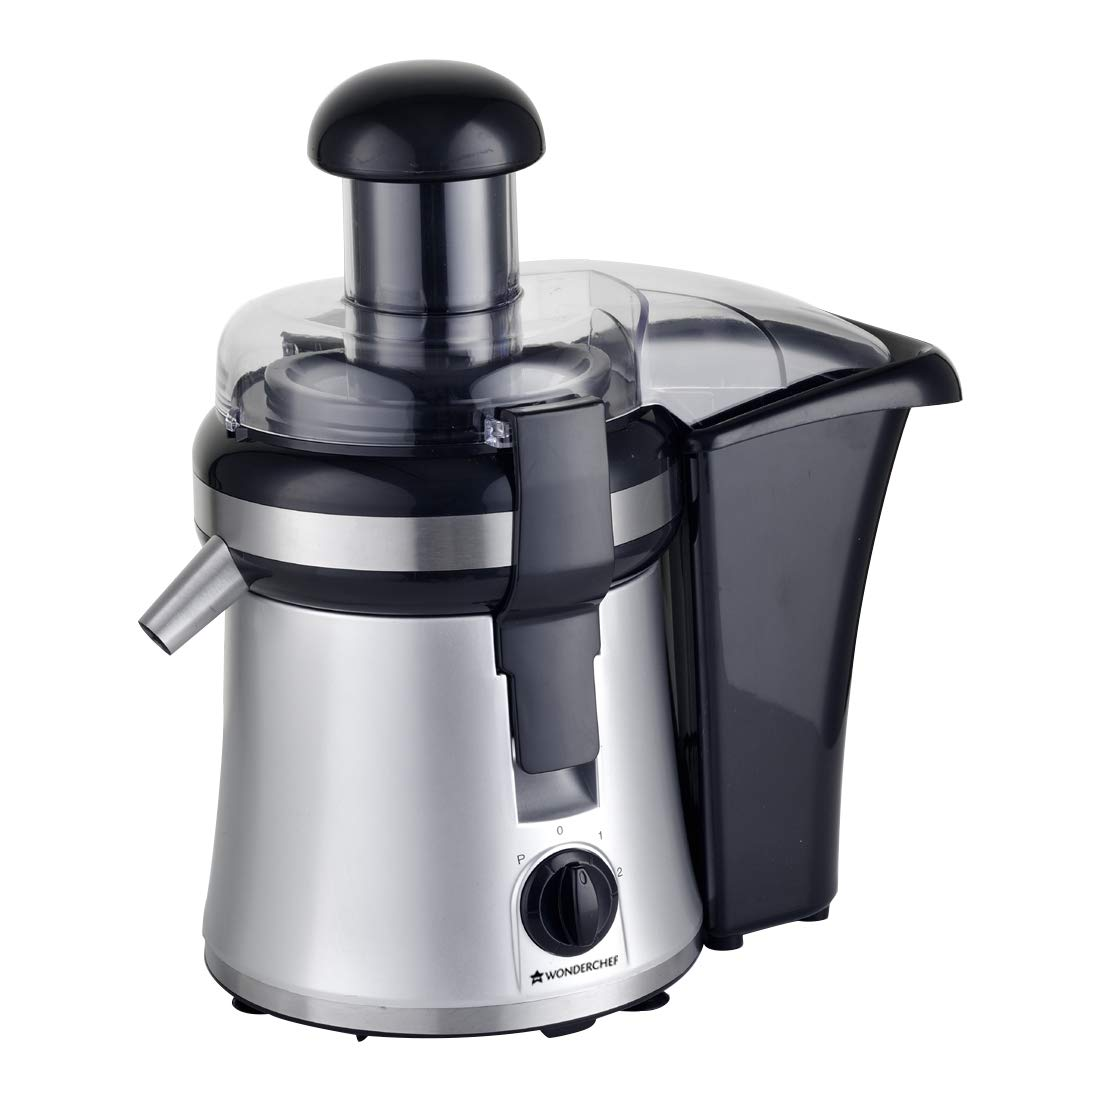 Wonderchef Prato 250 Watt Compact Juicer (BlackSilver)